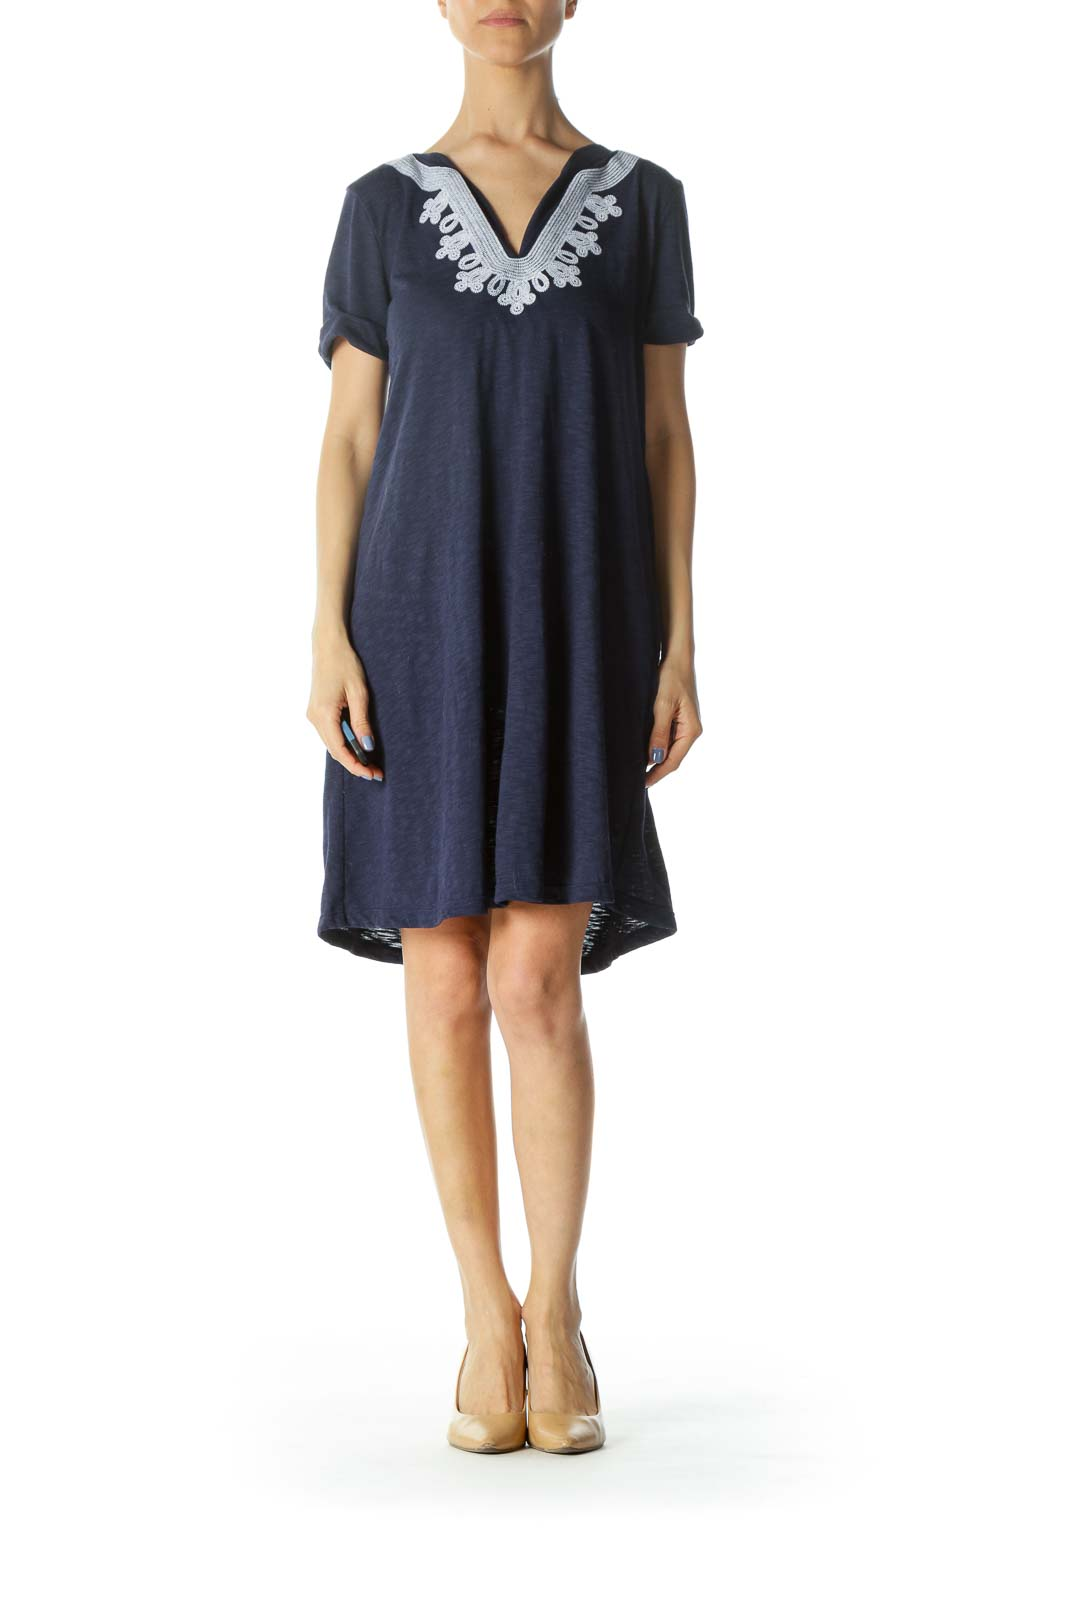 Blue/White Embroidered Short-Sleeve Jersey Day Dress